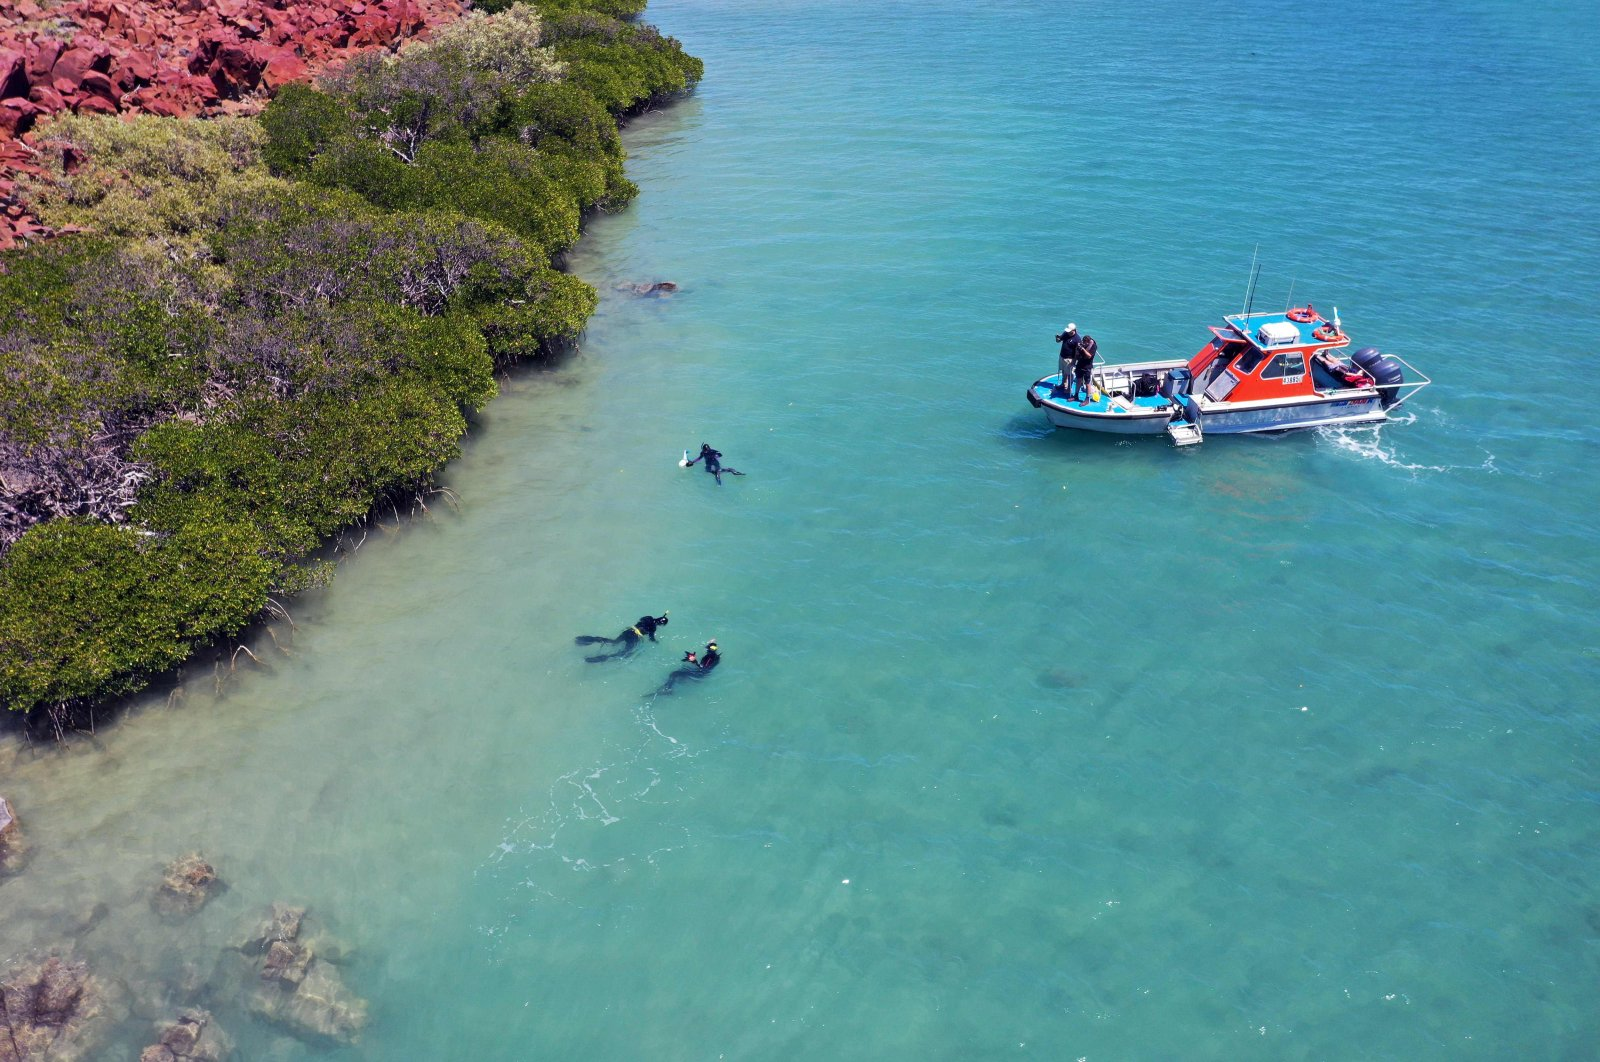 An archaeological research area in the Dampier Archipelago off the remote Western Australia coast, Sept. 9, 2019. (AFP Photo)